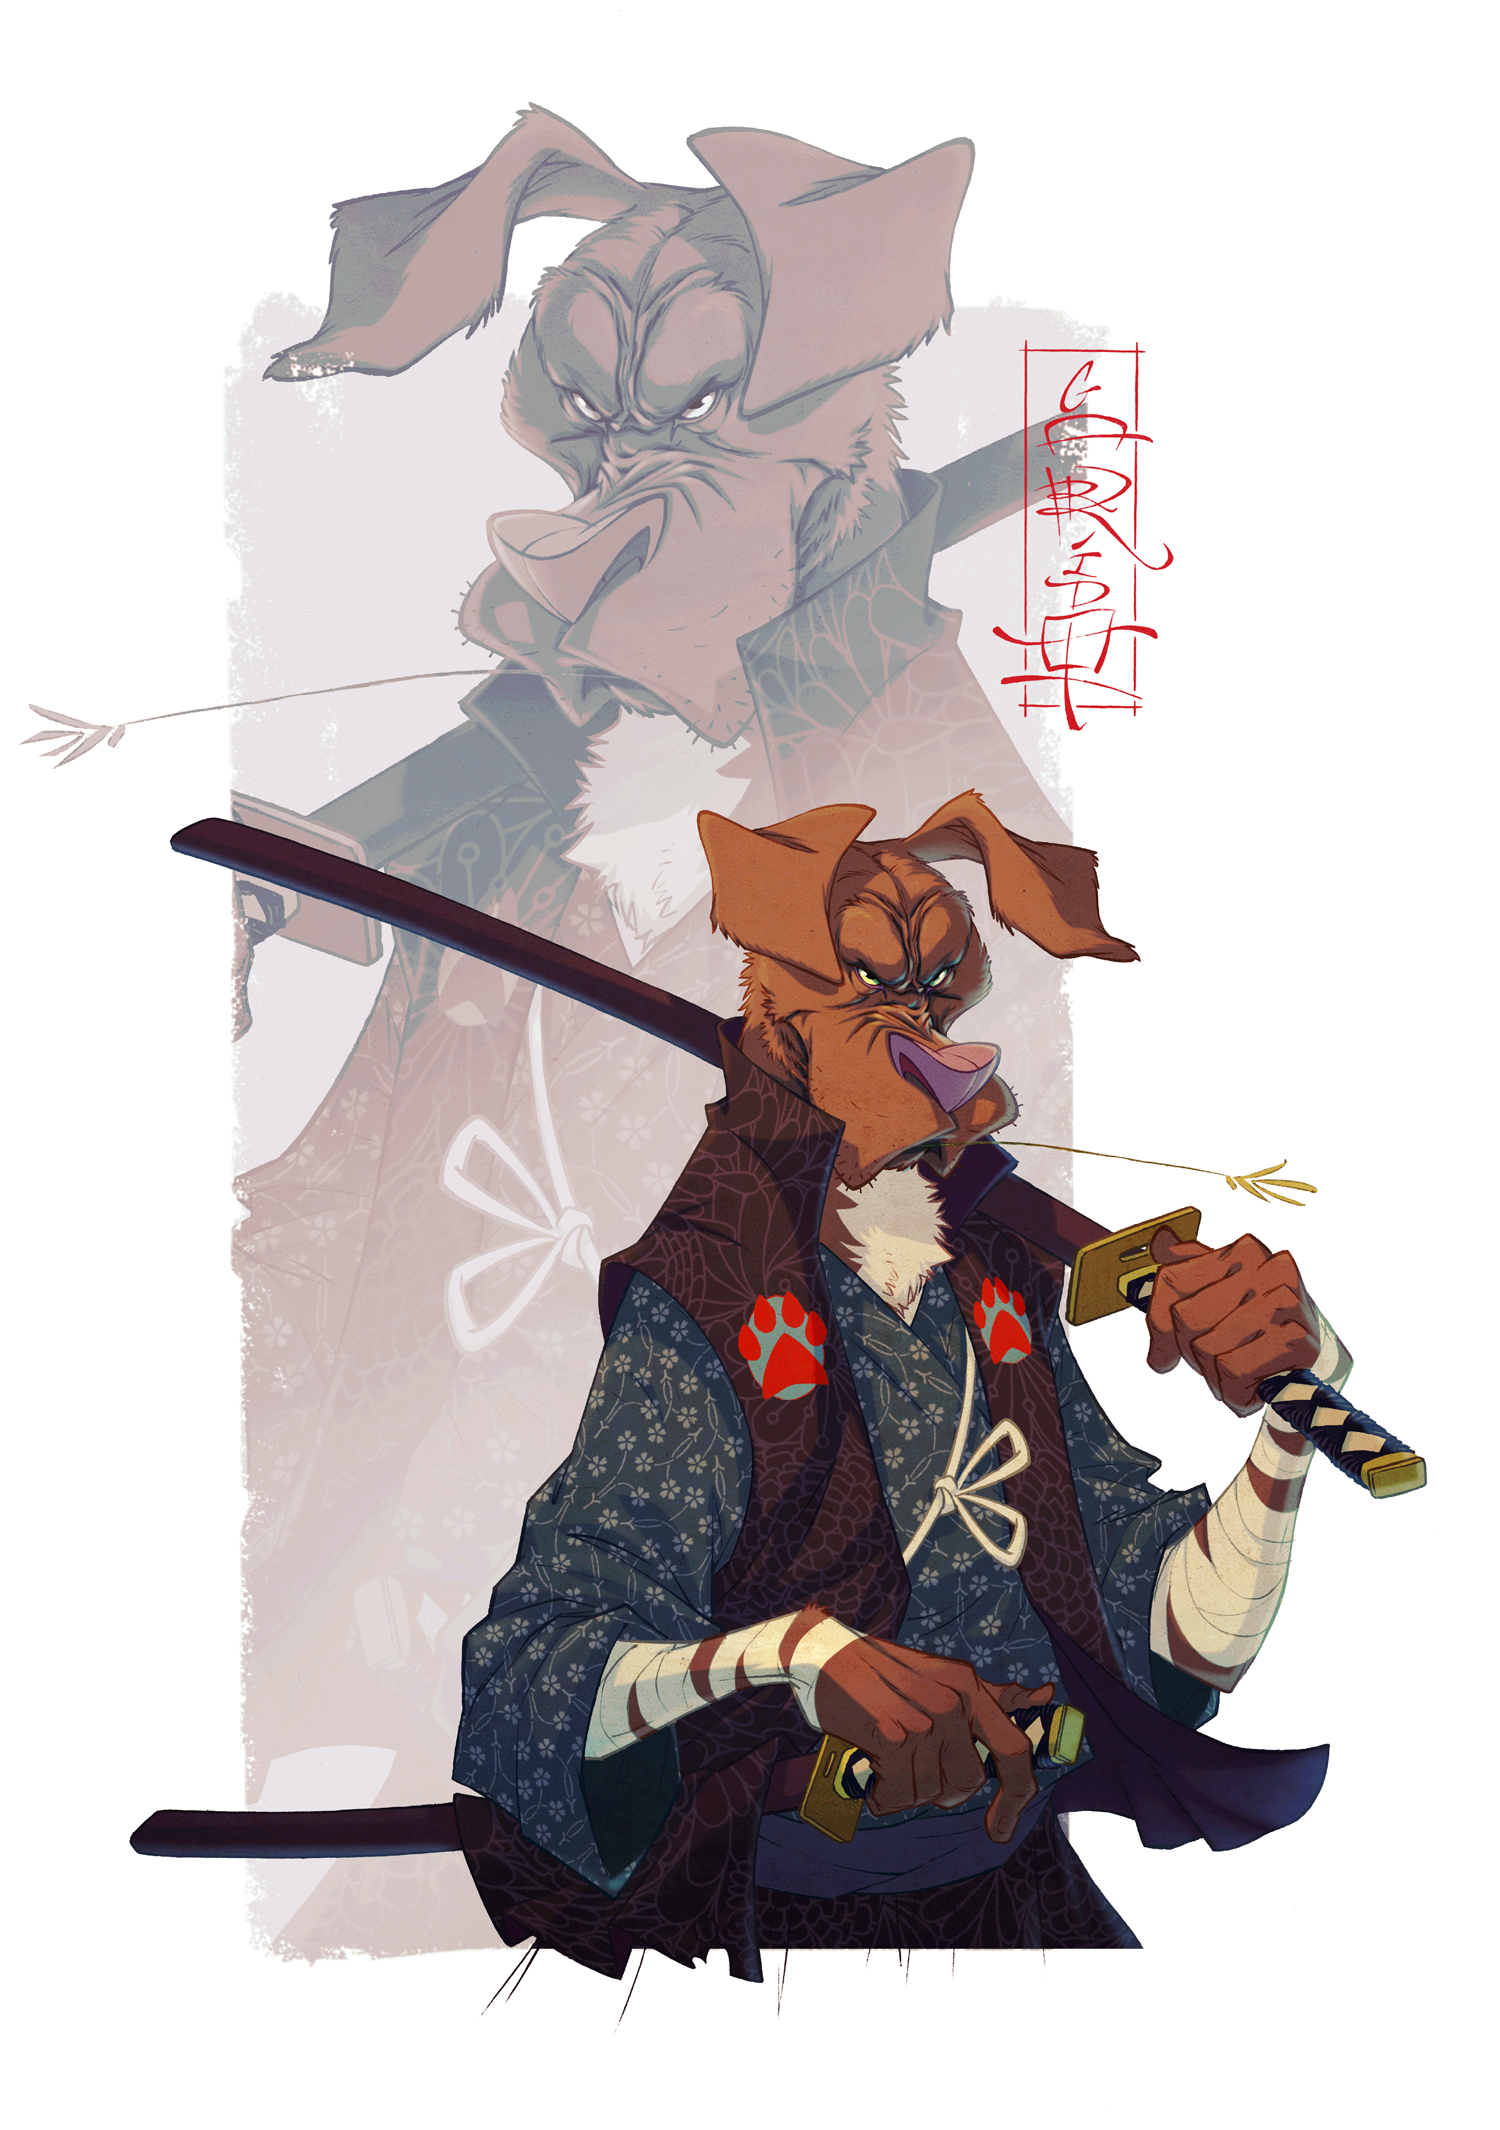 Pin by Duke Hoang on Characters in 2019 | Samurai, Character